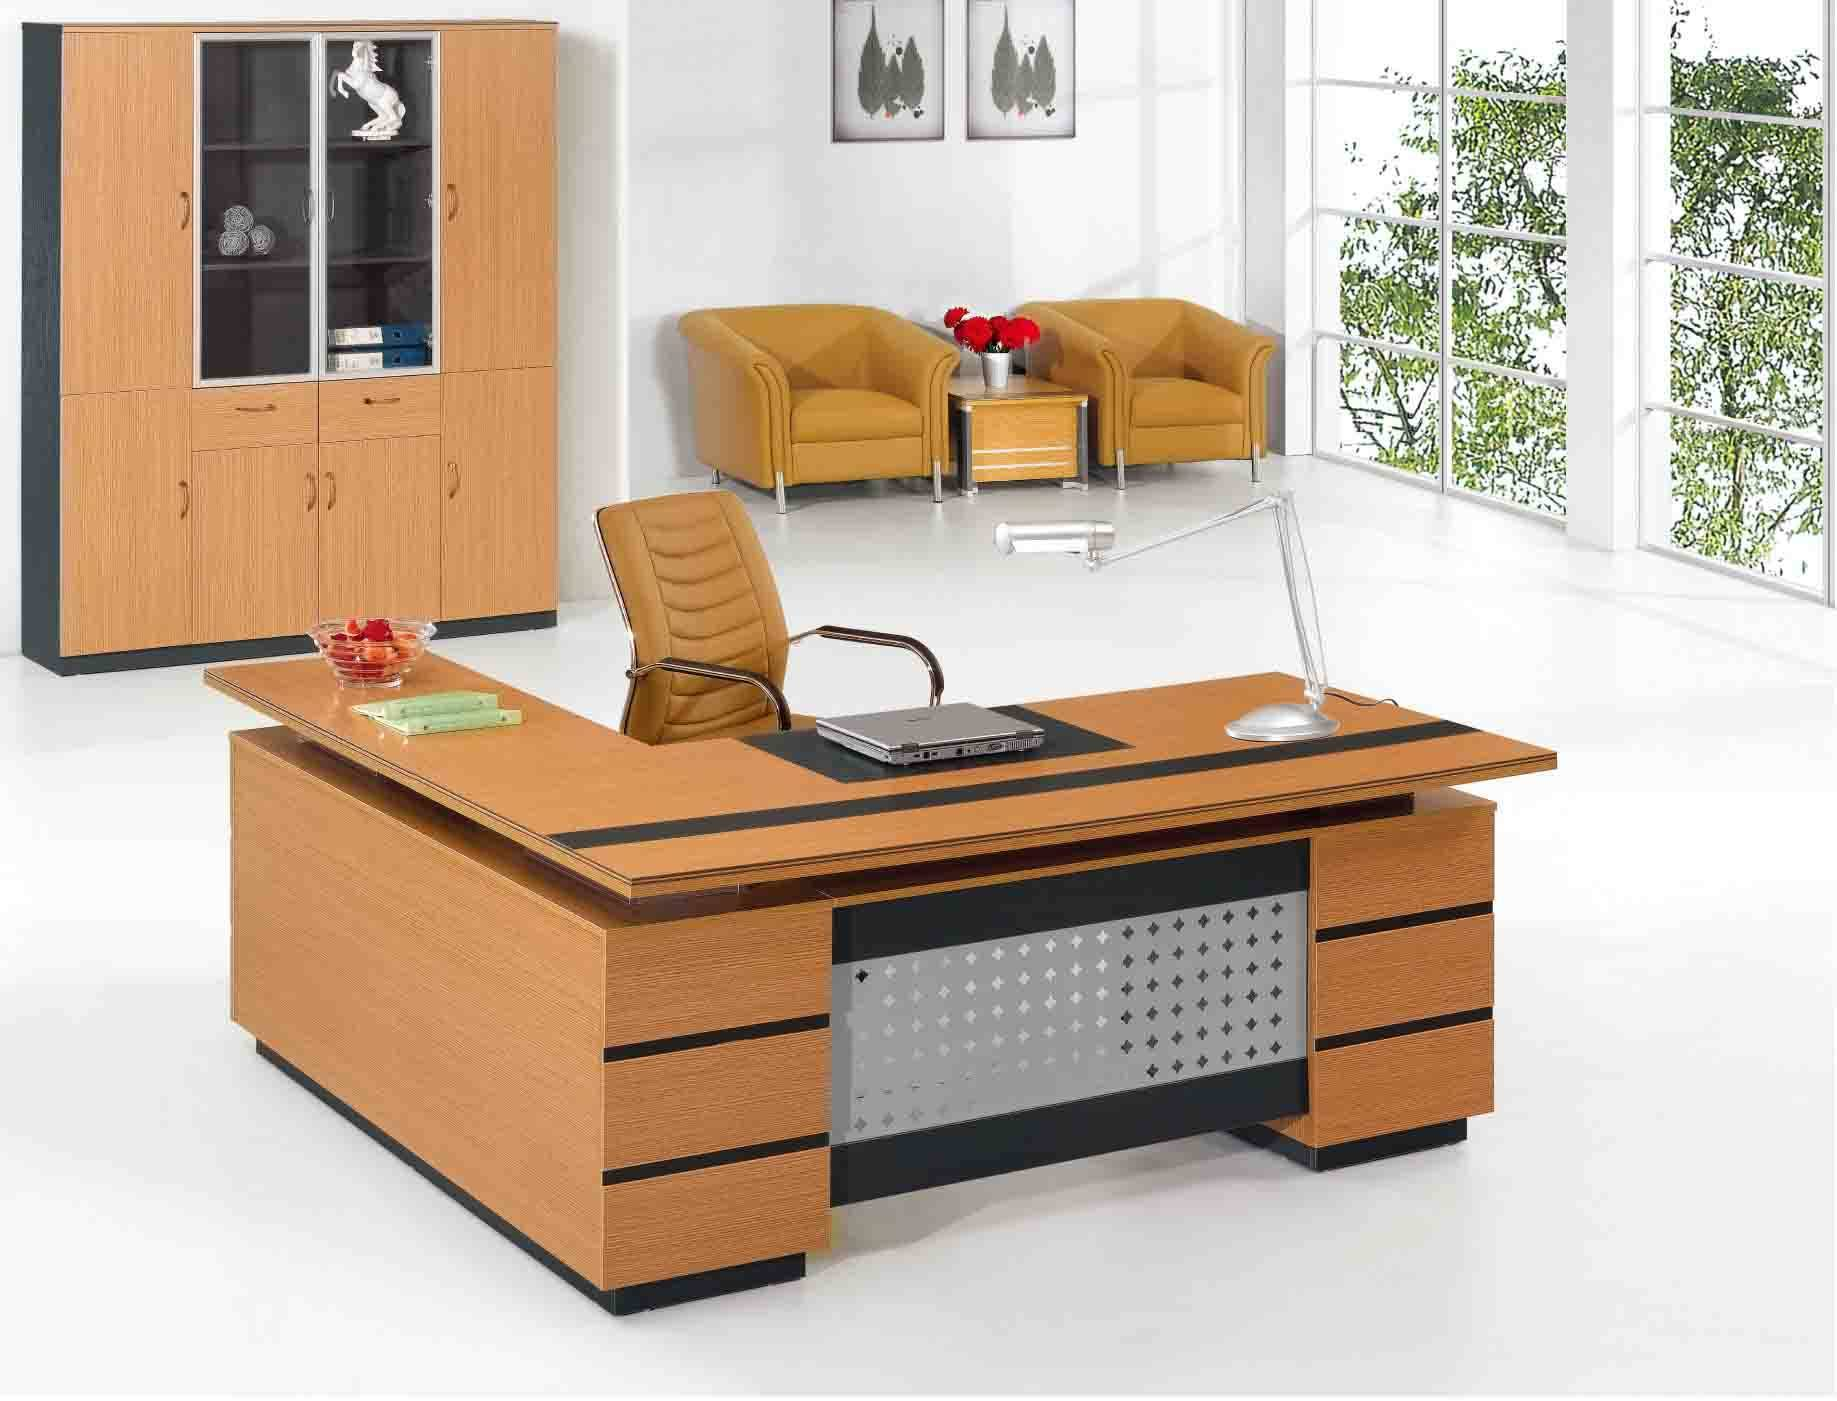 2011 fashion modern high quality wooden office desk guangzhou seaking furniture manufacture co ltd - Furniture ideas small spaces model ...